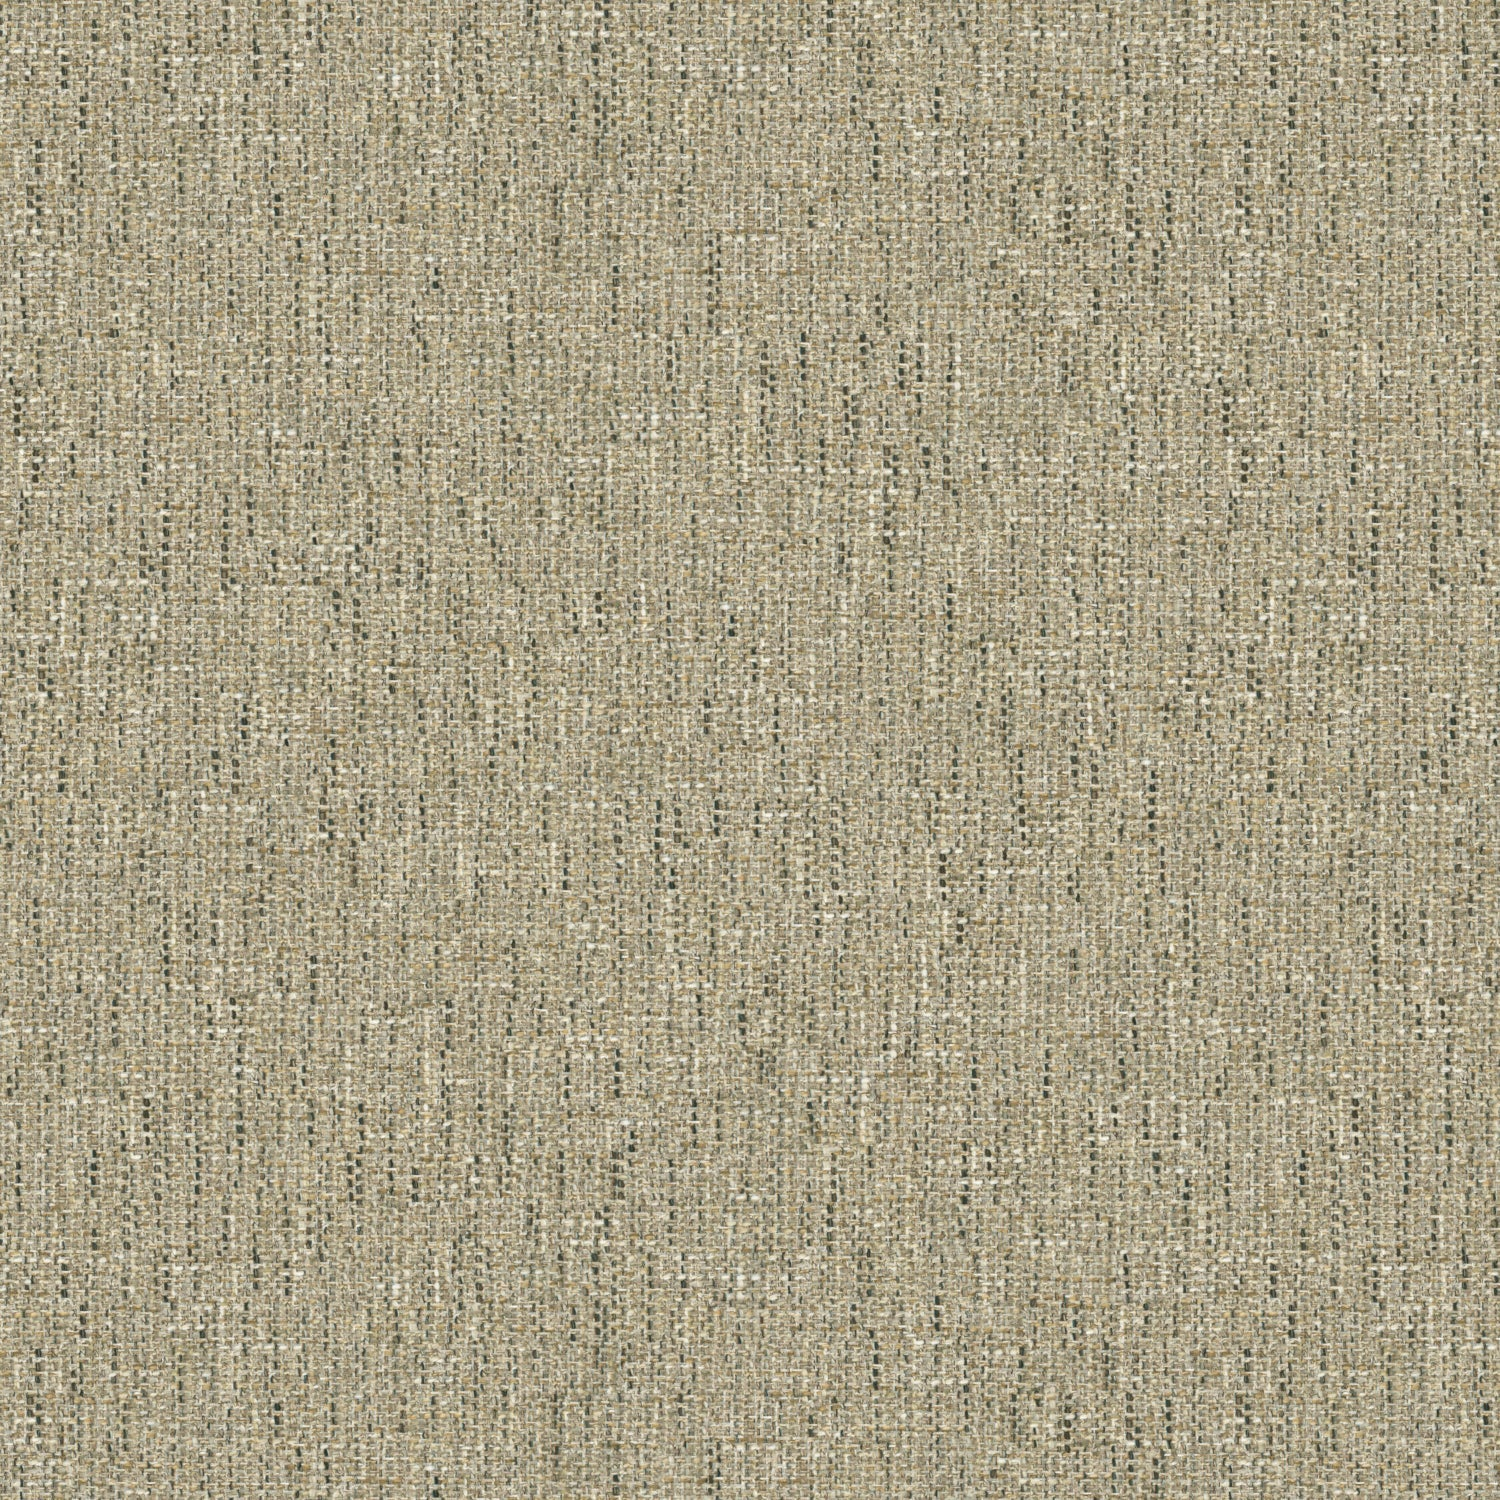 Fabric swatch of a stain resistant weave fabric with a tweed design in grey colours